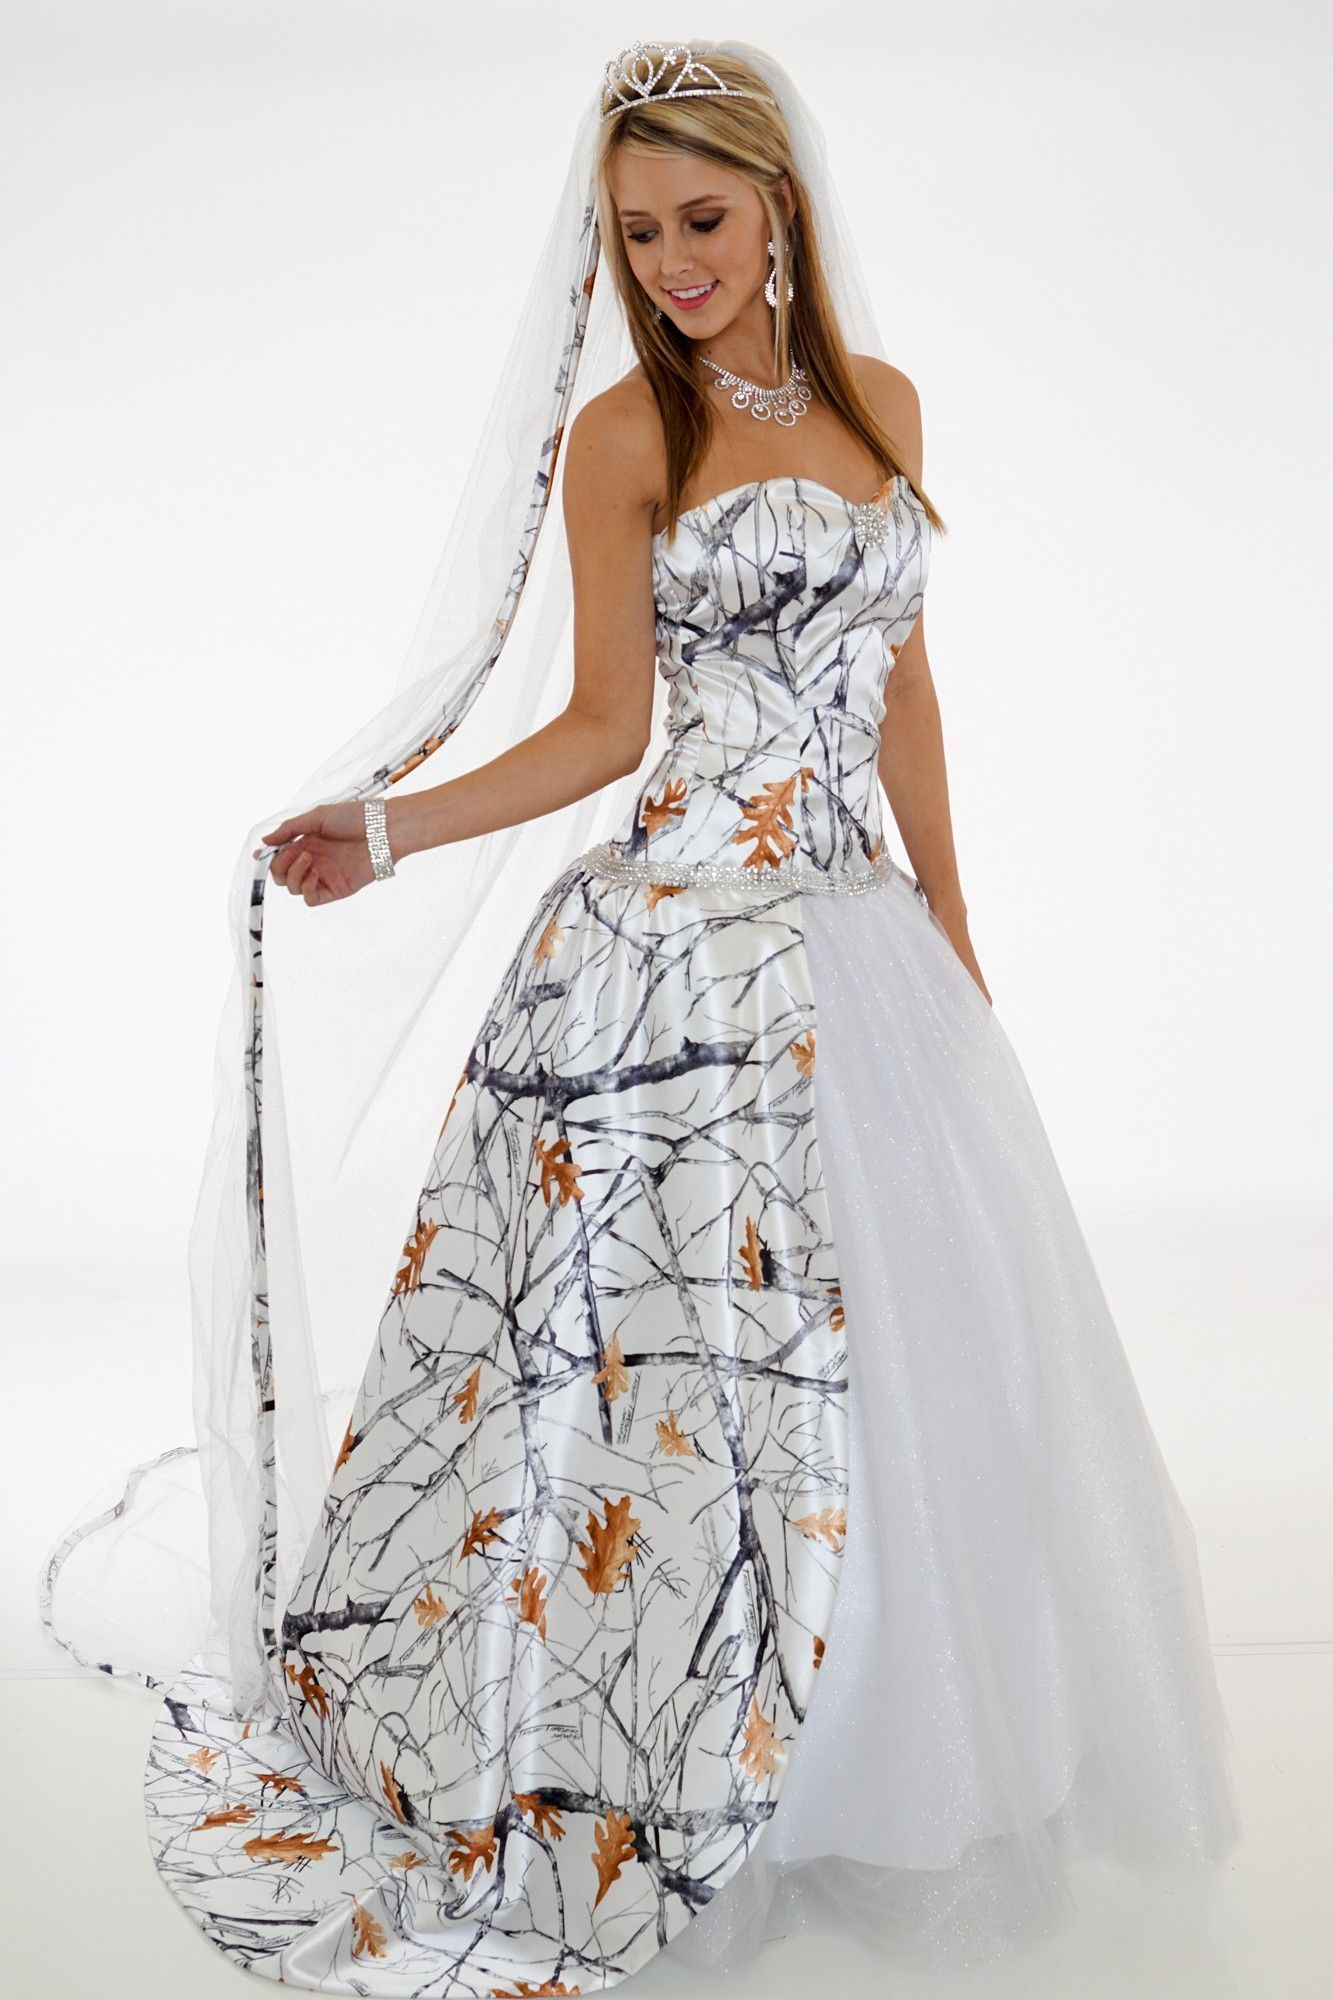 One of a kind wedding dresses   Camo Wedding Dresses Ideas to Make Your Big Day One of a Kind